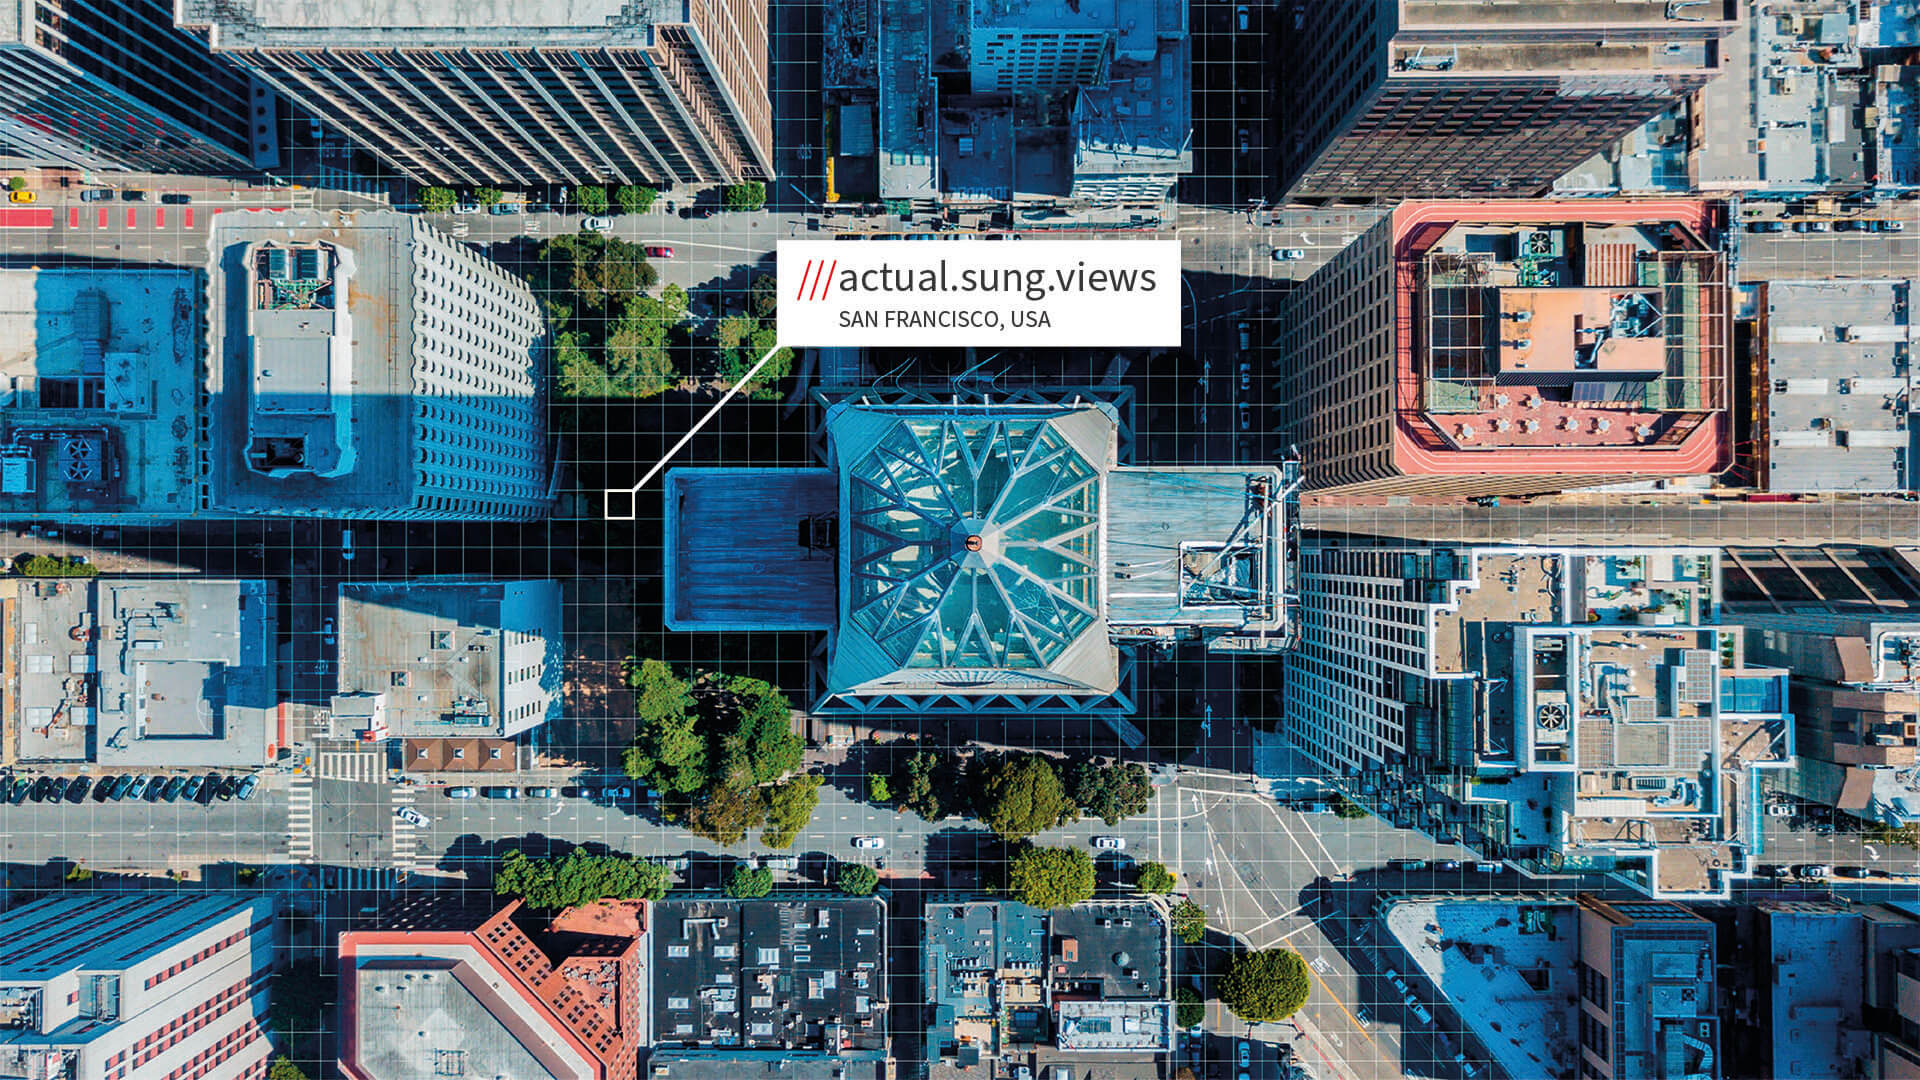 San Francisco aerial view with what3words address